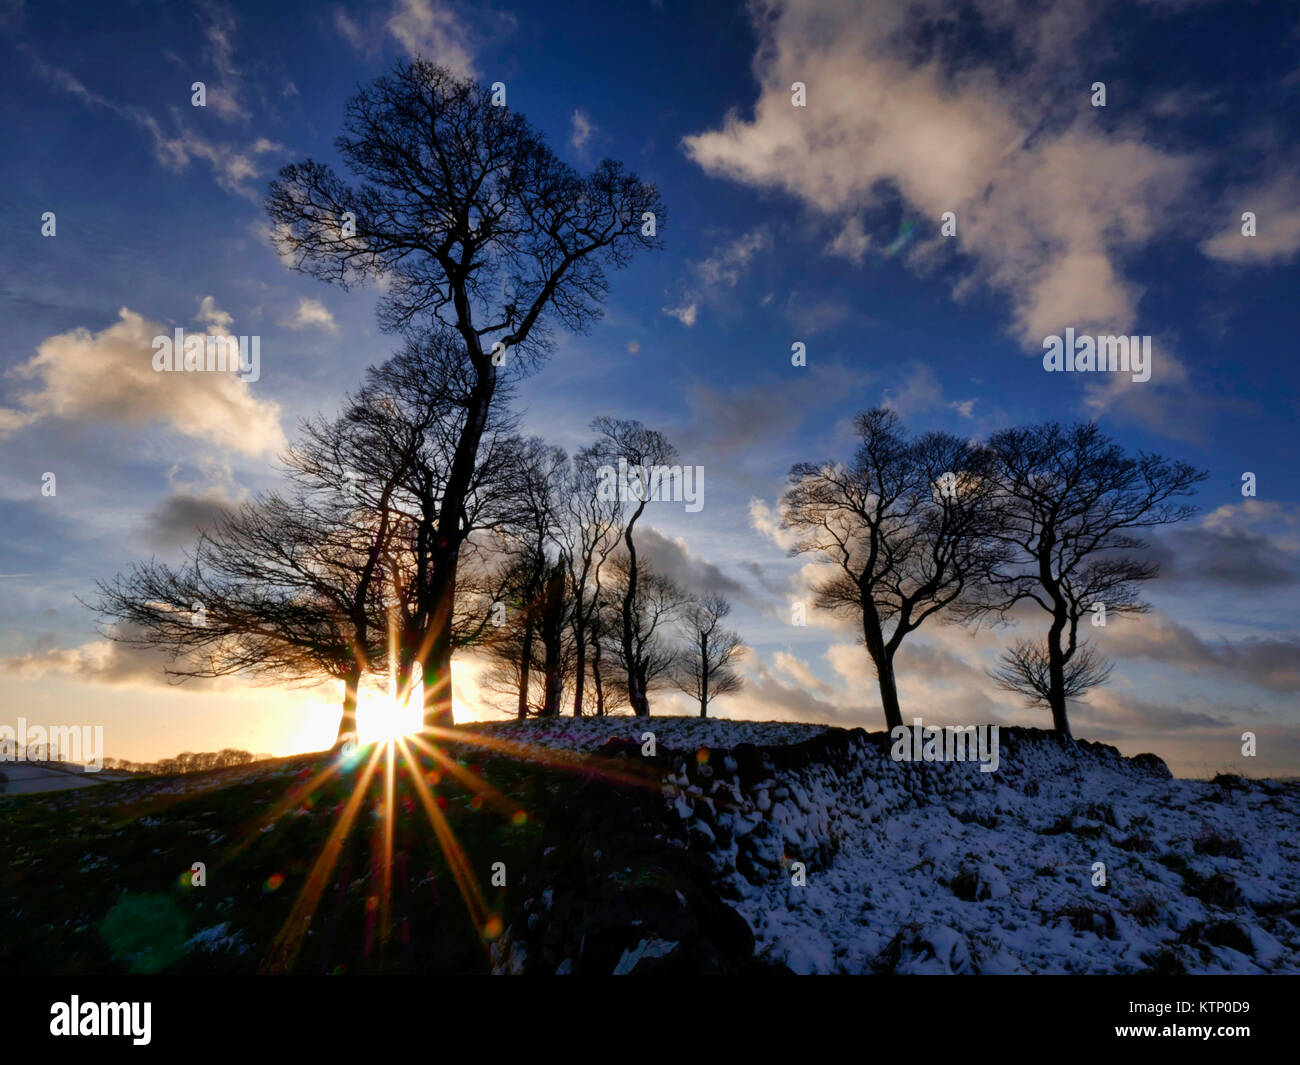 Moat Low, Derbyshire. 28th Dec, 2017. UK Weather: Moat Low Derbyshire spectacular sunset over the snow capped Bronze Stock Photo